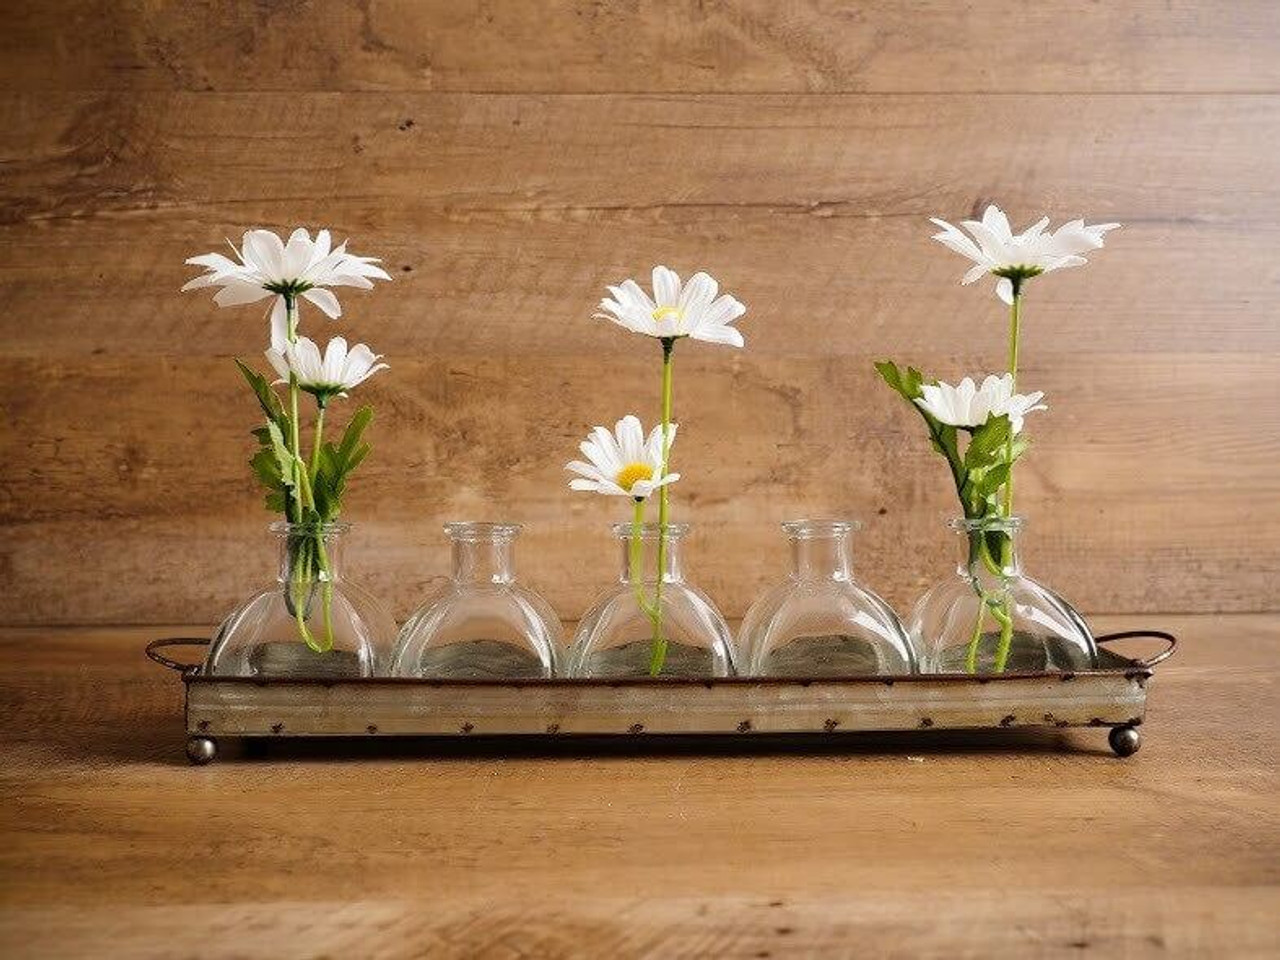 Decorative Metal Tray With Five Glass Vases